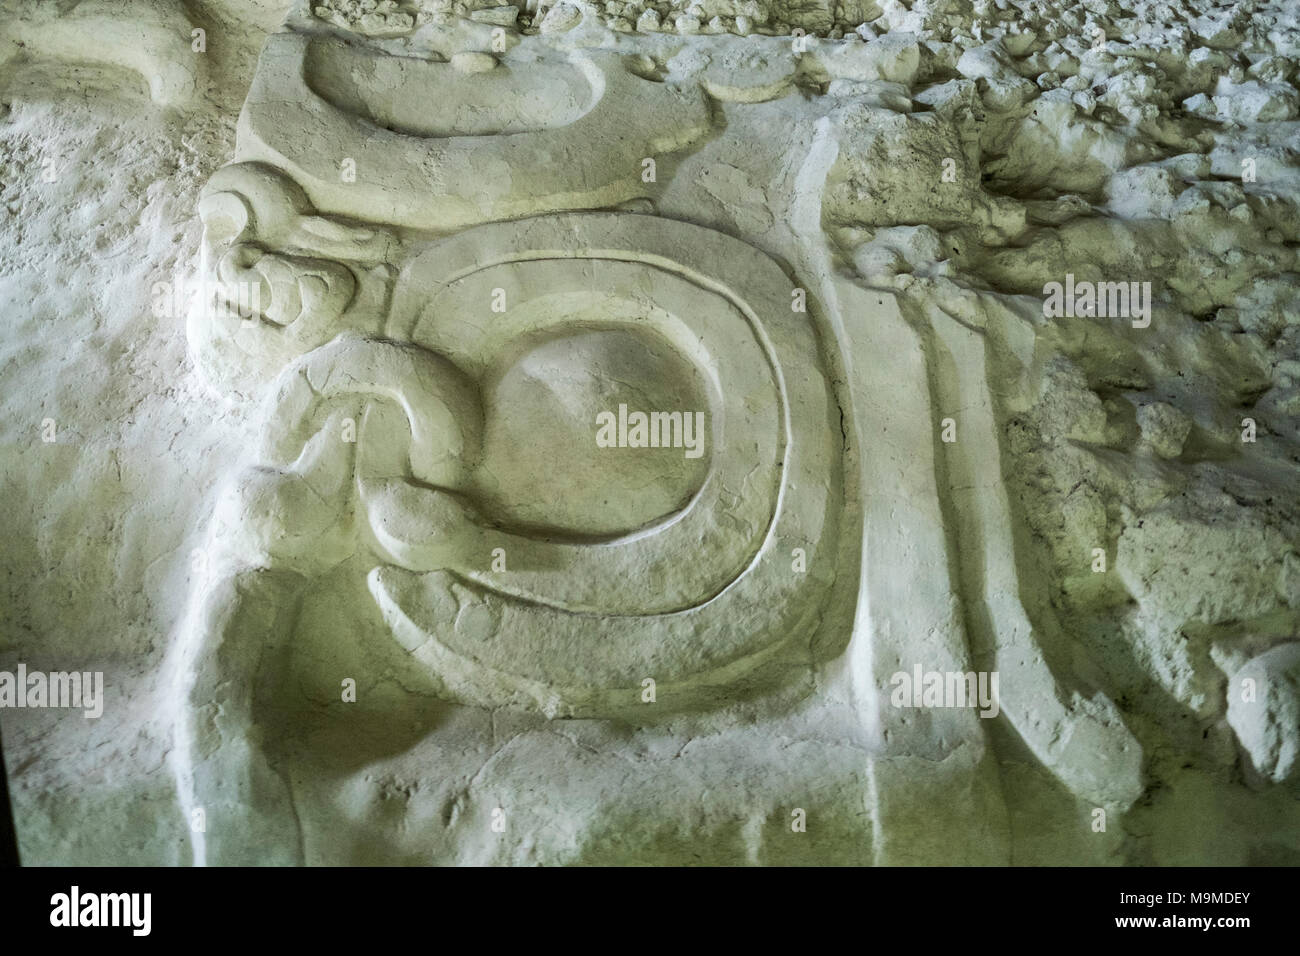 Ancient stone glyphs from the Mayan archeological site in Yaxha, Guatemala - Stock Image